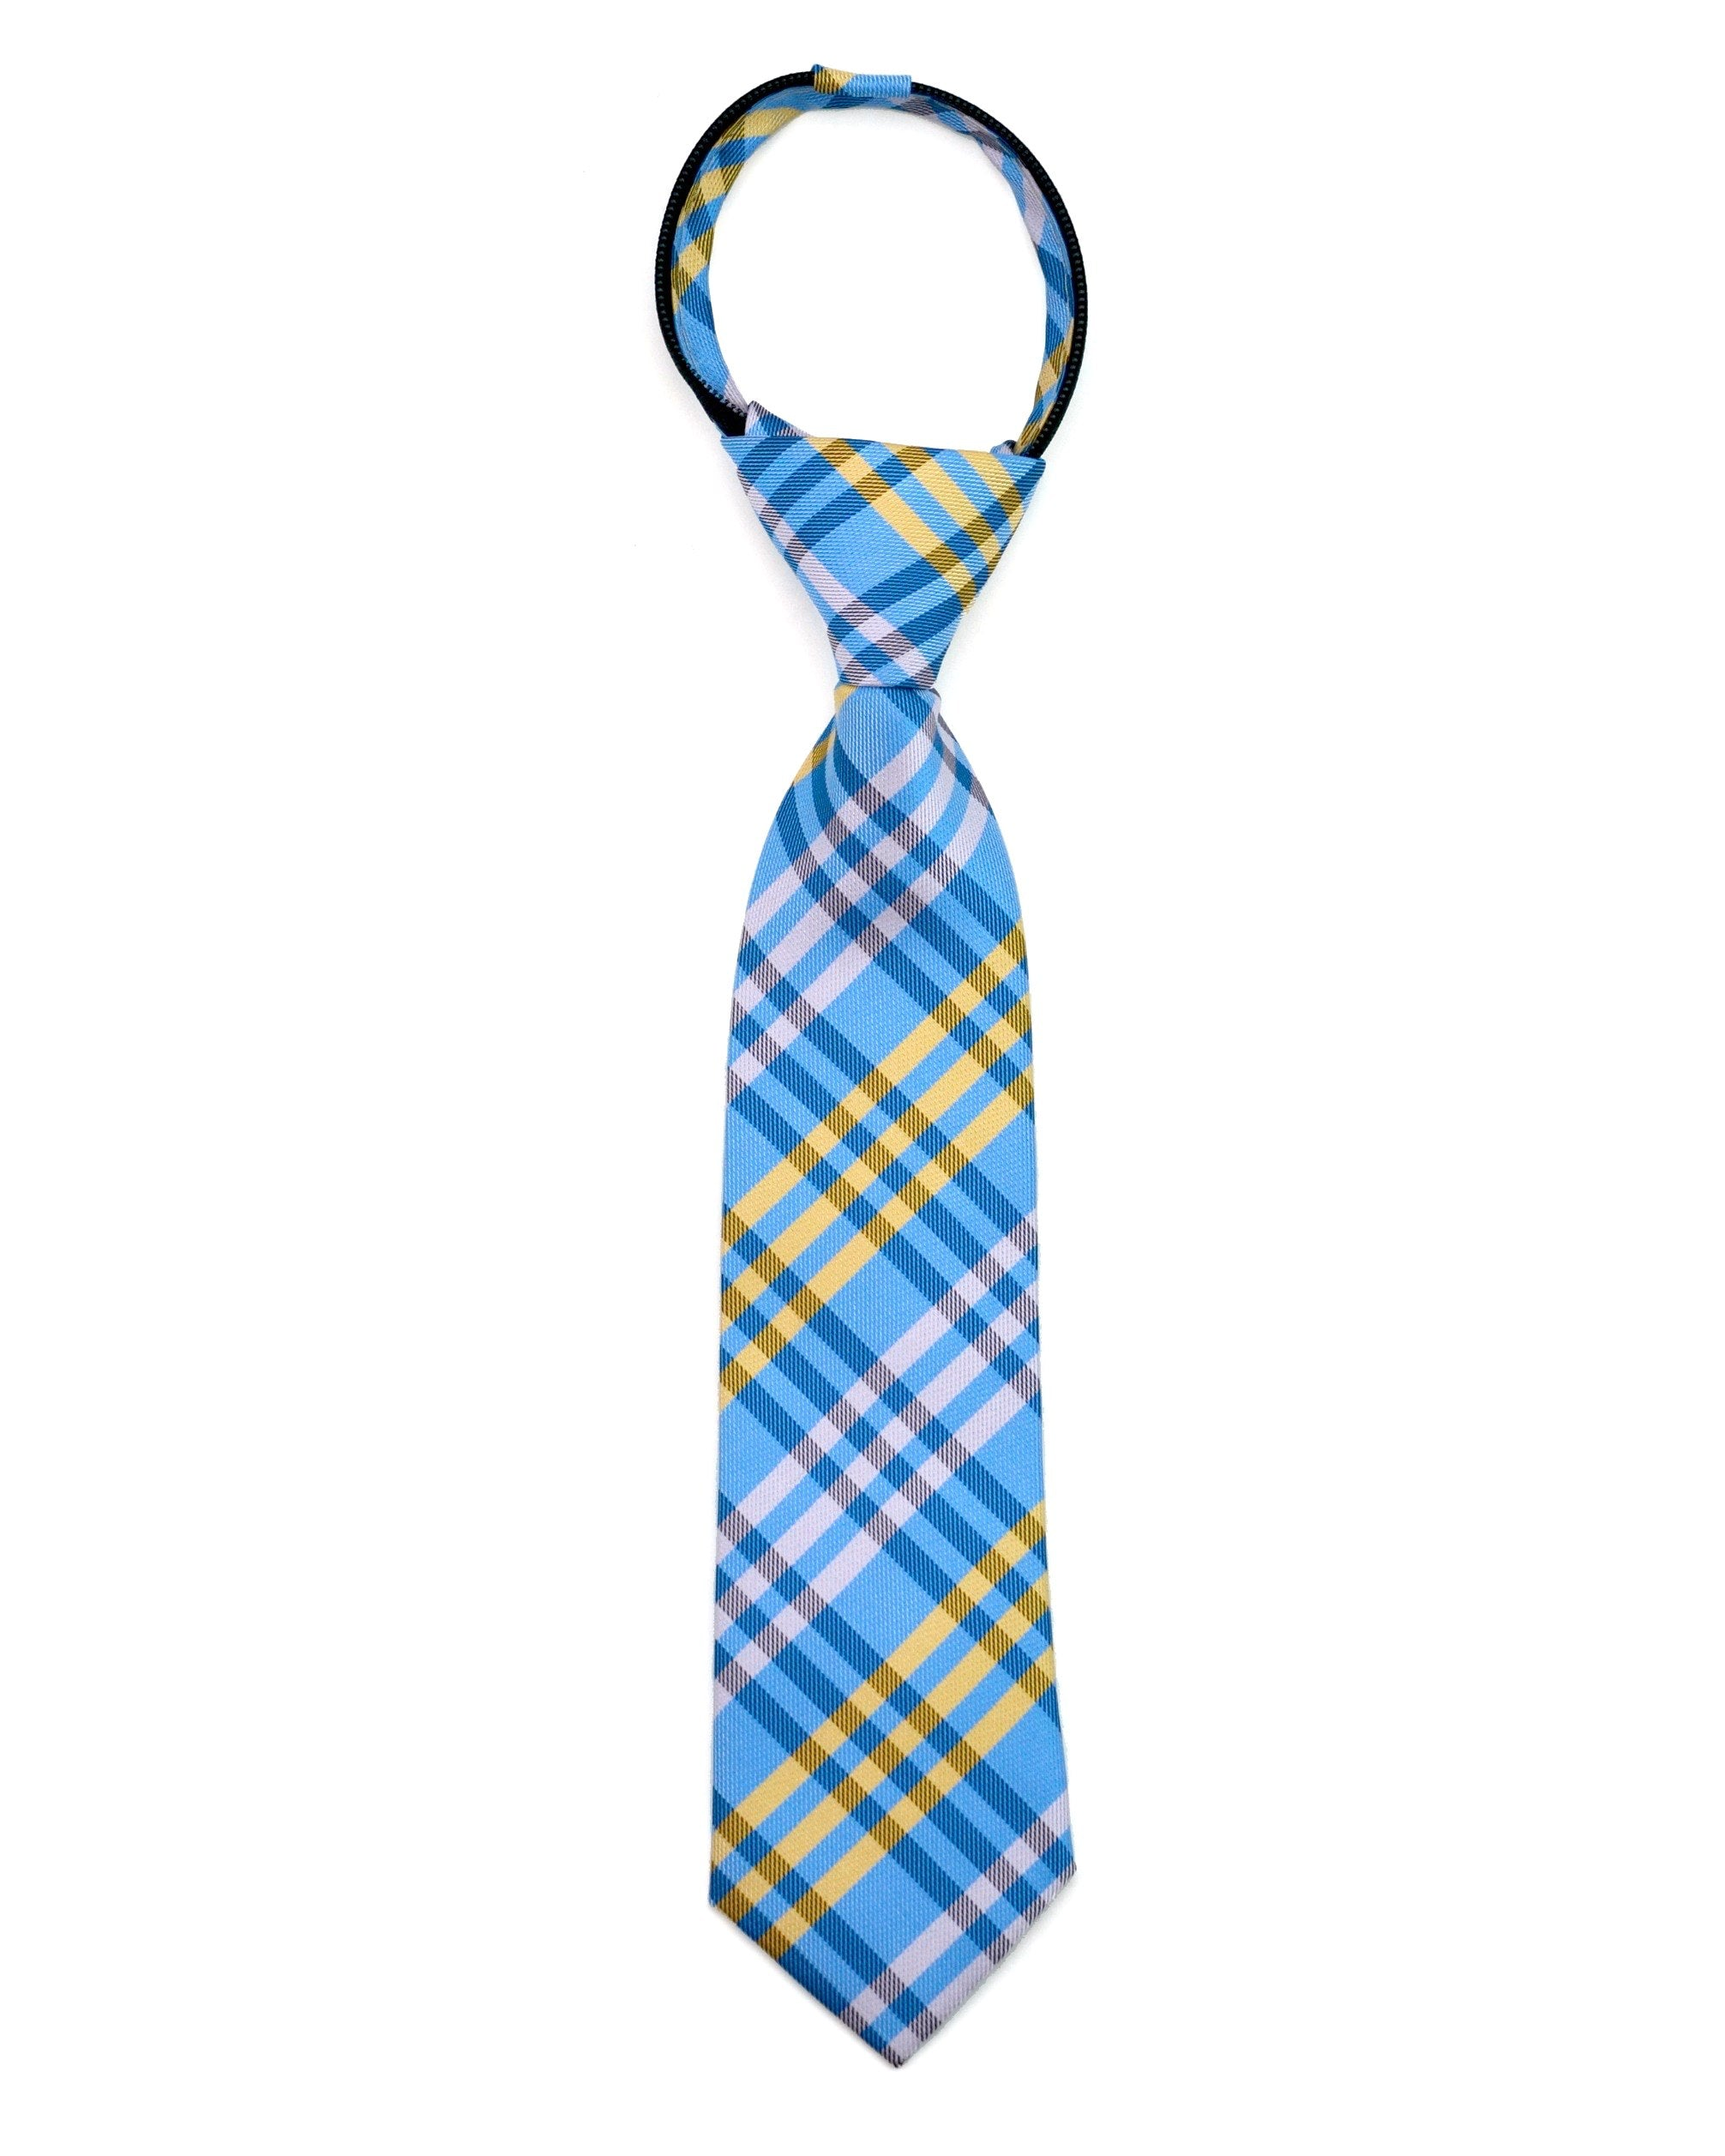 yellow-and-bright-blue-plaid-zipper-tie.jpg